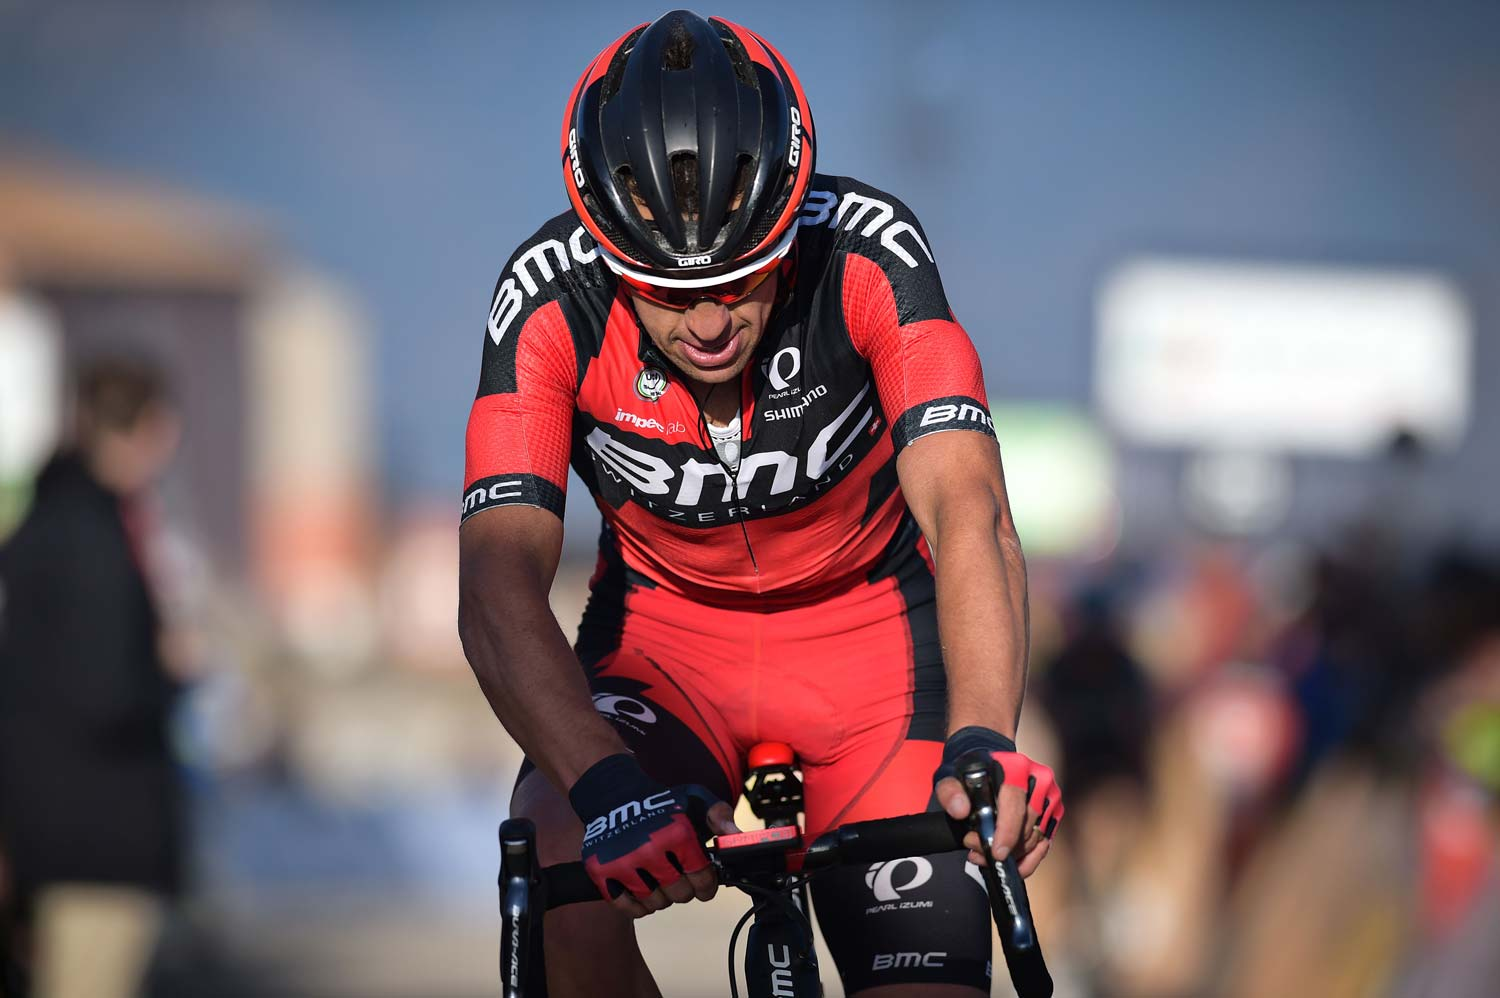 Porte finishes fourth in the sixth stage of Paris-Nice... and moves up the GC rankings in the process. Photo: Yuzuru Sunada